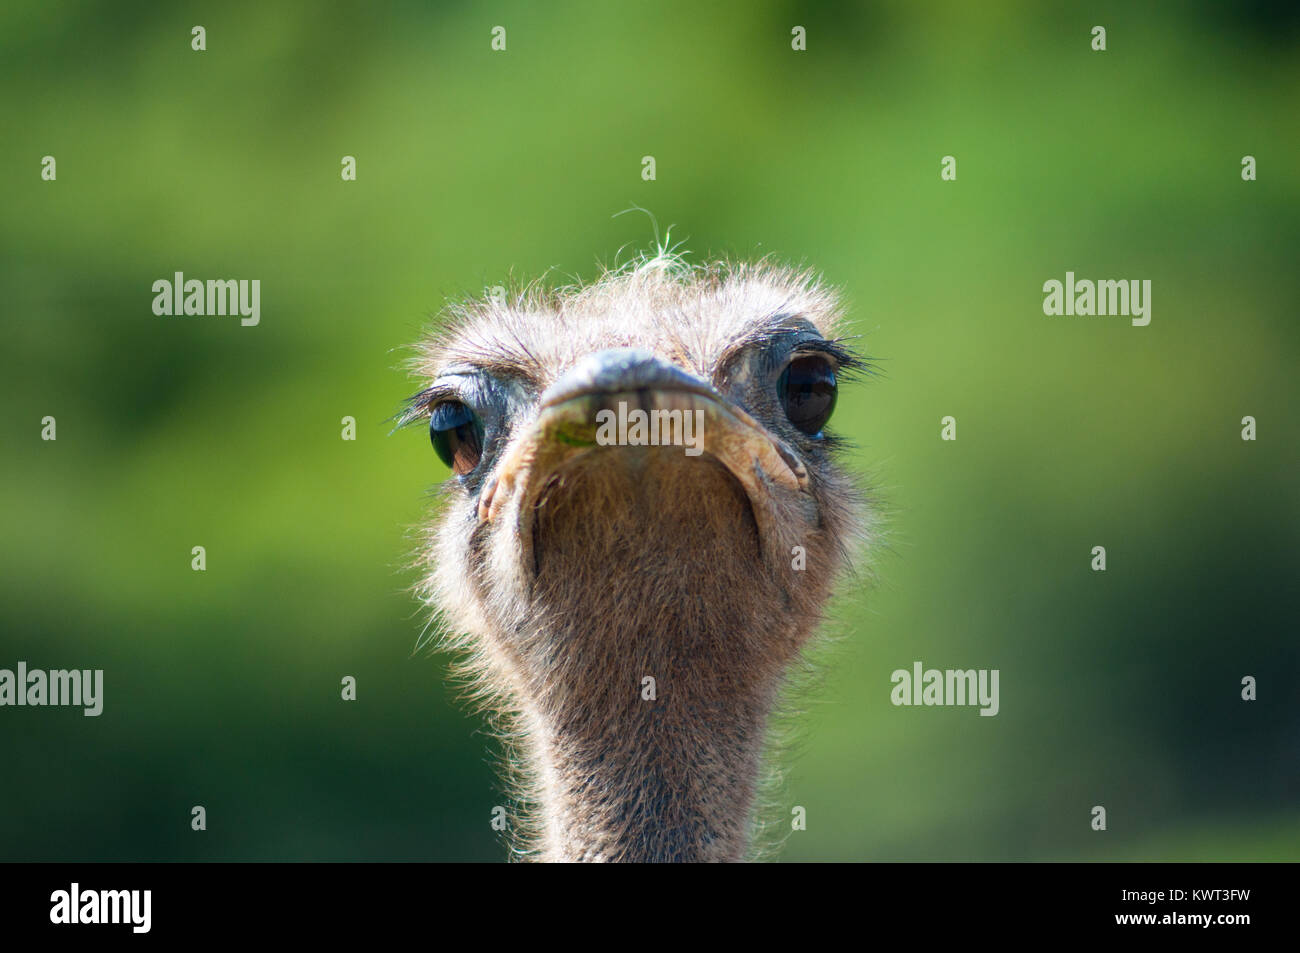 Ostrich looking at camera Stock Photo